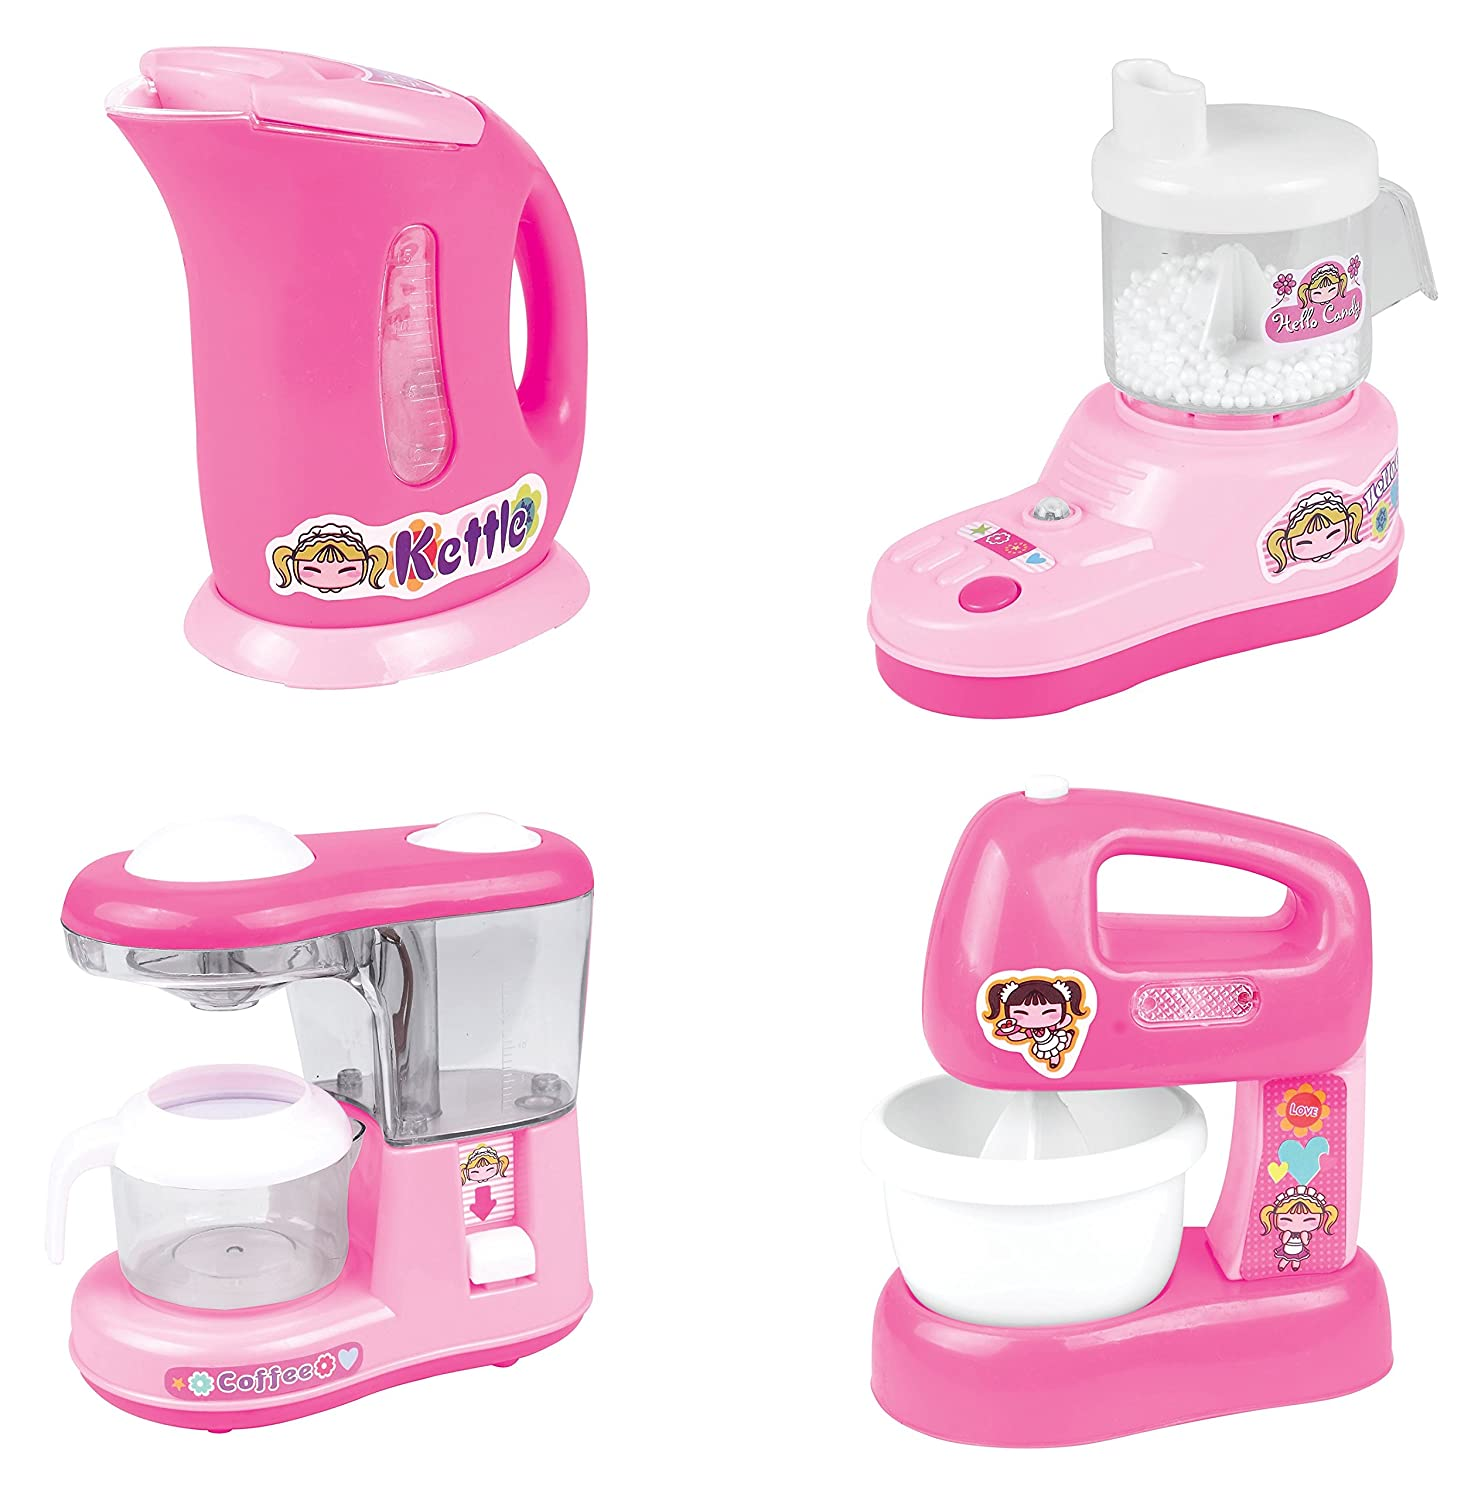 PowerTRC Kitchen Appliance Playset for Kids, Kettle, Juicer, Coffee Maker, Mixer, Kitchen Accessories